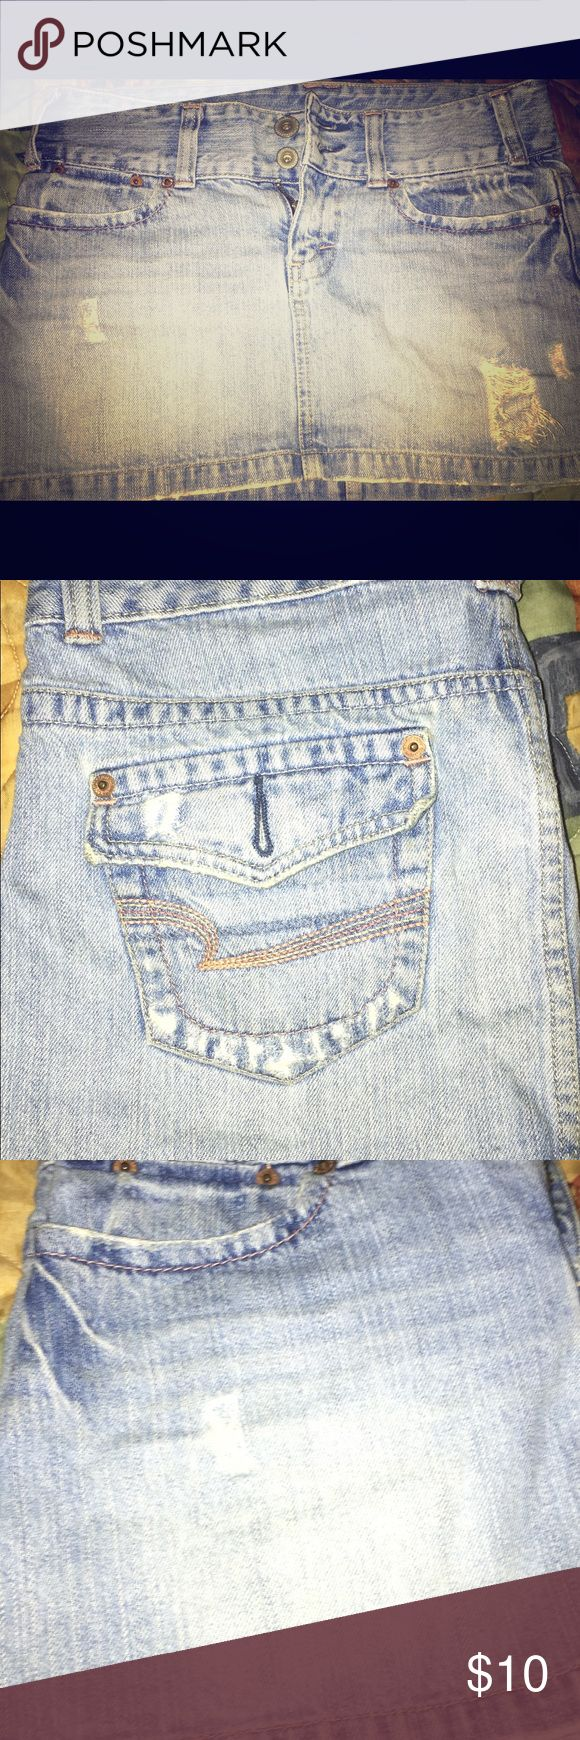 Gently Used American Eagle Skirt ✨🌈🌻 Gently used light denim American Eagle 🦅 skirt , perfect for the upcoming warm weather. This is one of my favorite skirts and items in my closet 💖💖. It's about mid thigh length, so show them legs 😎😍! Missing a back pocket button, but other than that great condition. American Eagle Outfitters Skirts Mini